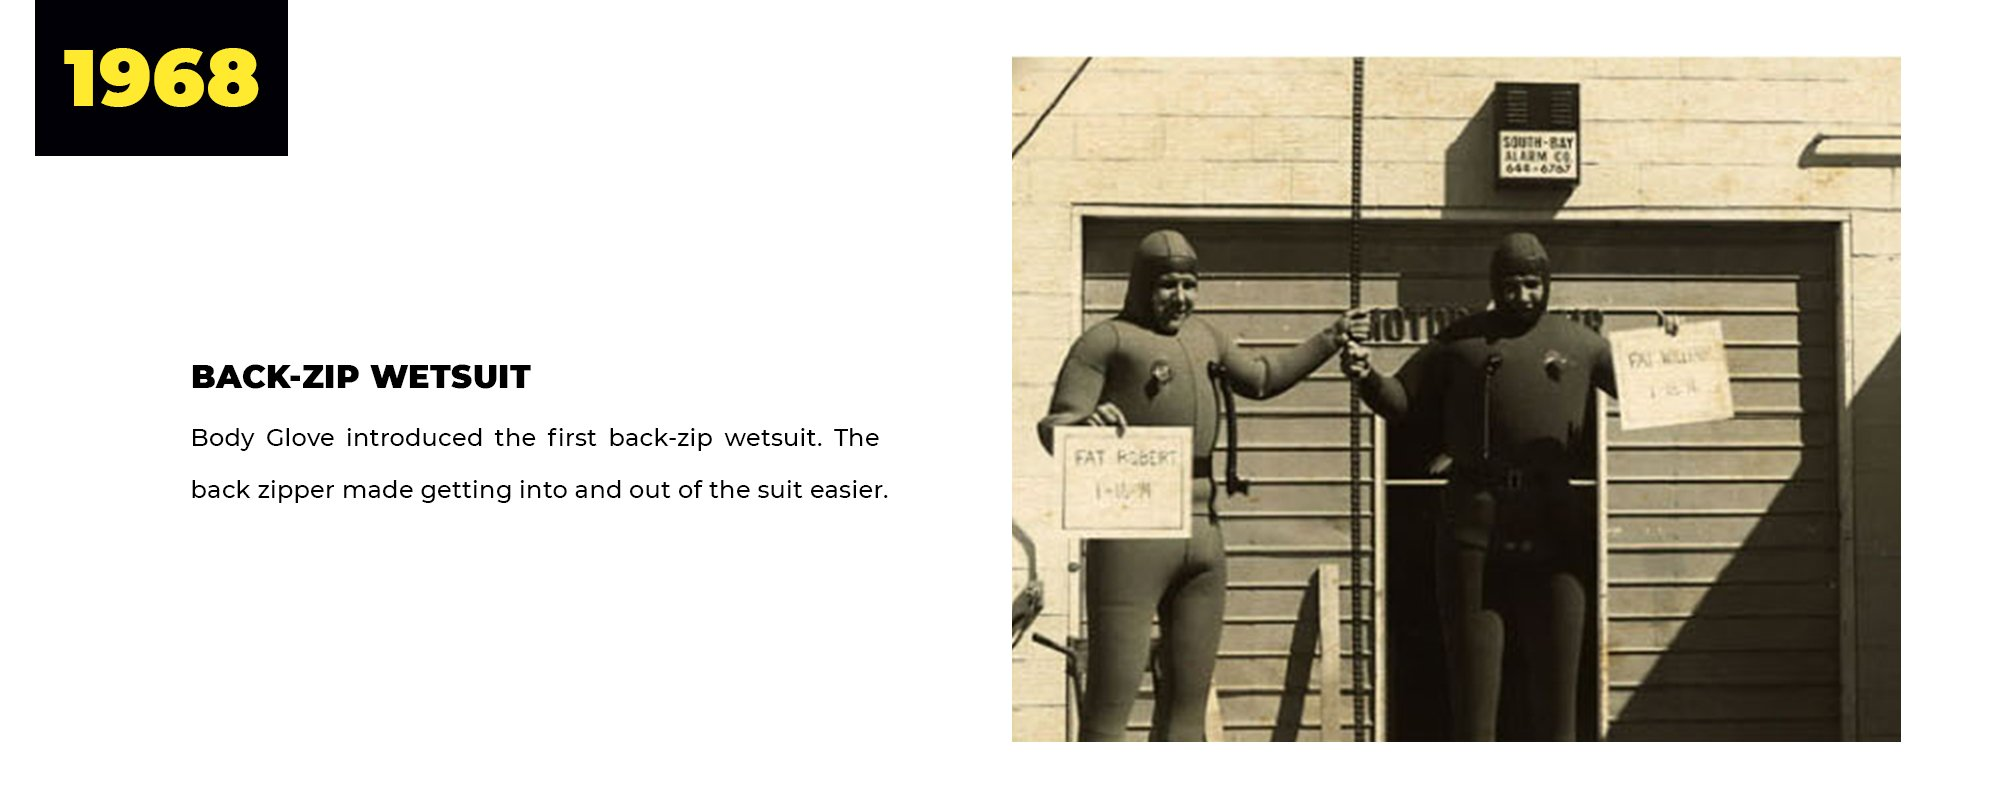 1968 | Back-Zip Wetsuit | Body Glove introduced the first back-zip wetsuit. The back zipper made getting into and out of the suit easier.